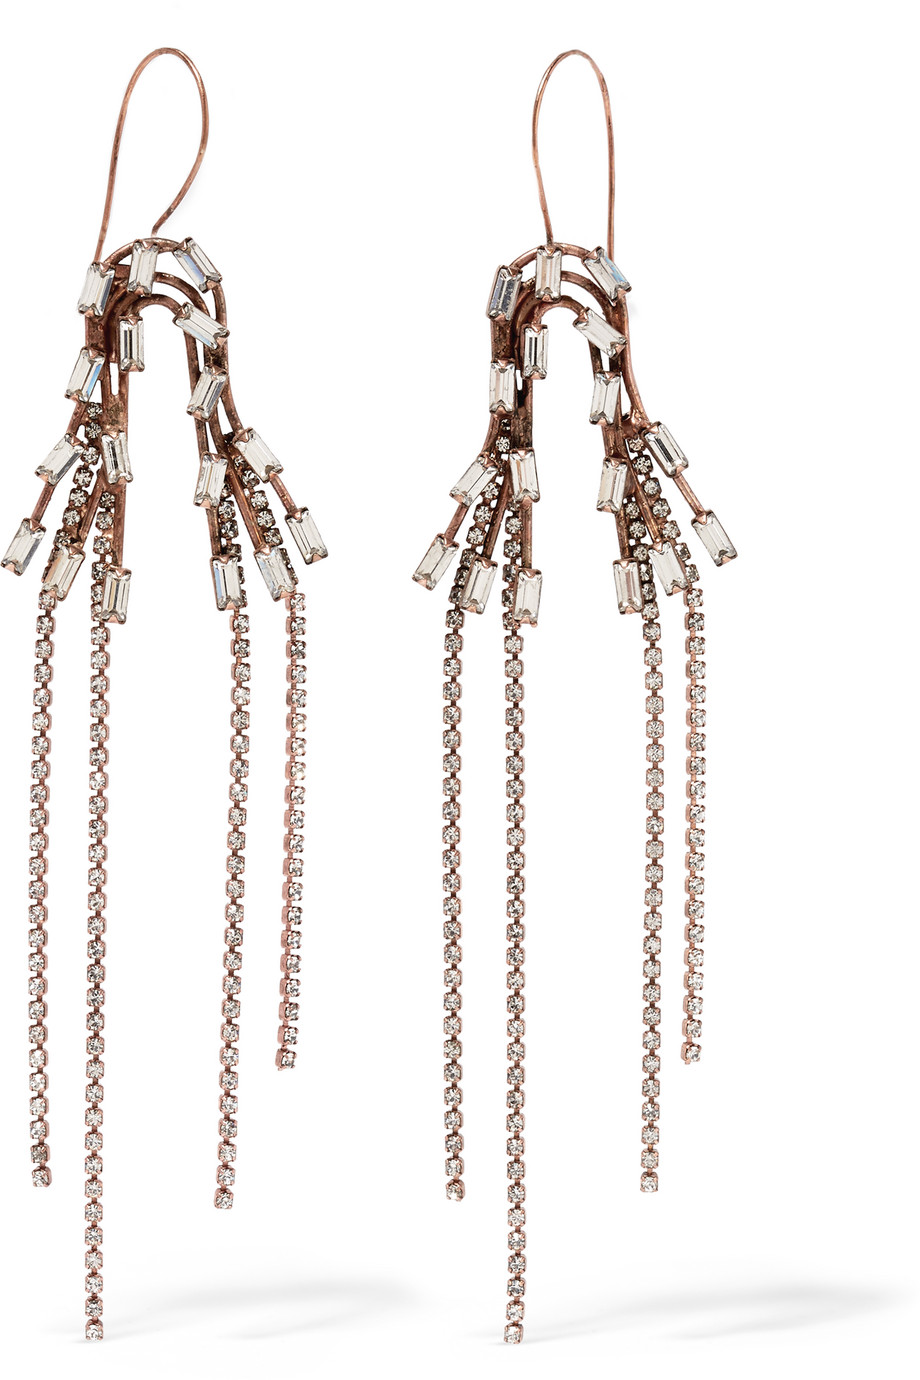 Erickson Beamon Rose Gold-Plated Swarovski Crystal Earrings, Rose Gold/Metallic, Women's